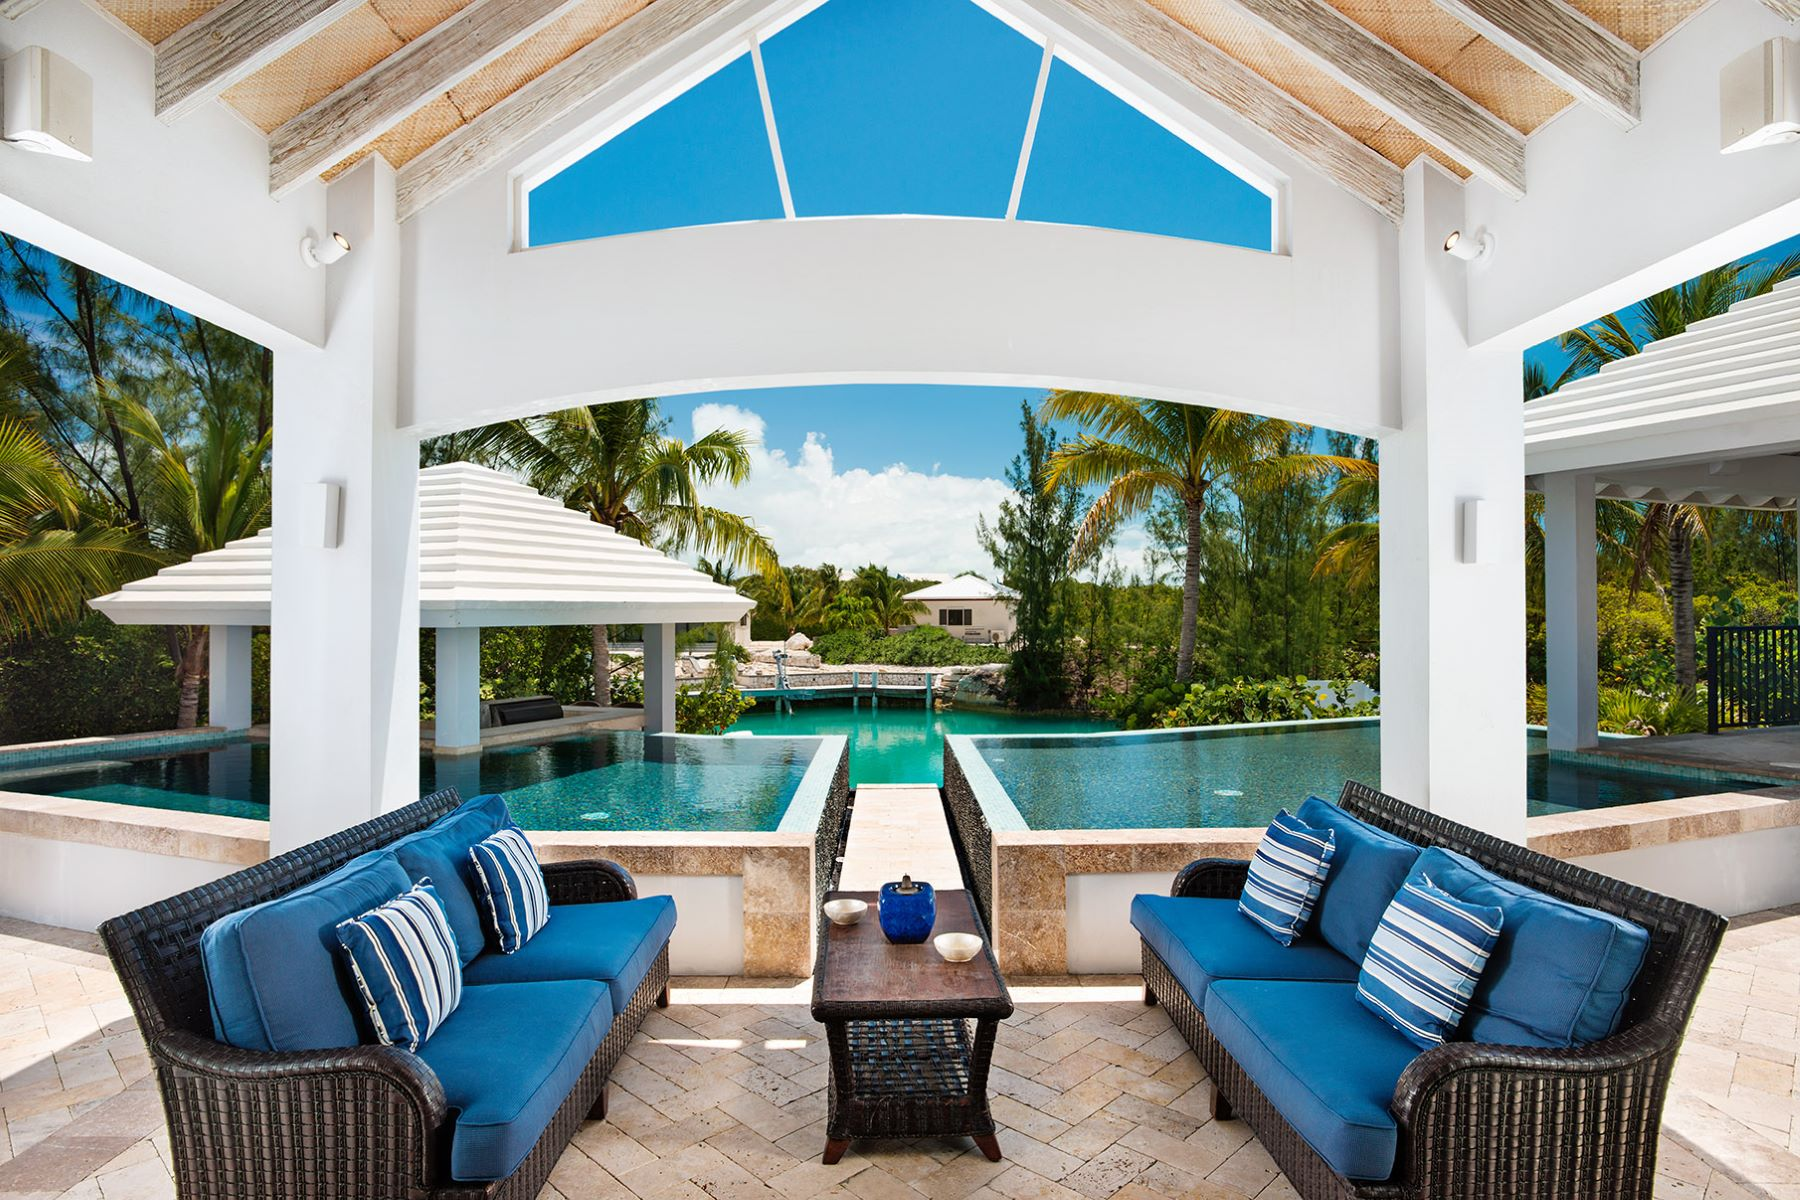 Single Family Home for Sale at Canalfront Home Governor's Road Leeward, Providenciales Turks And Caicos Islands